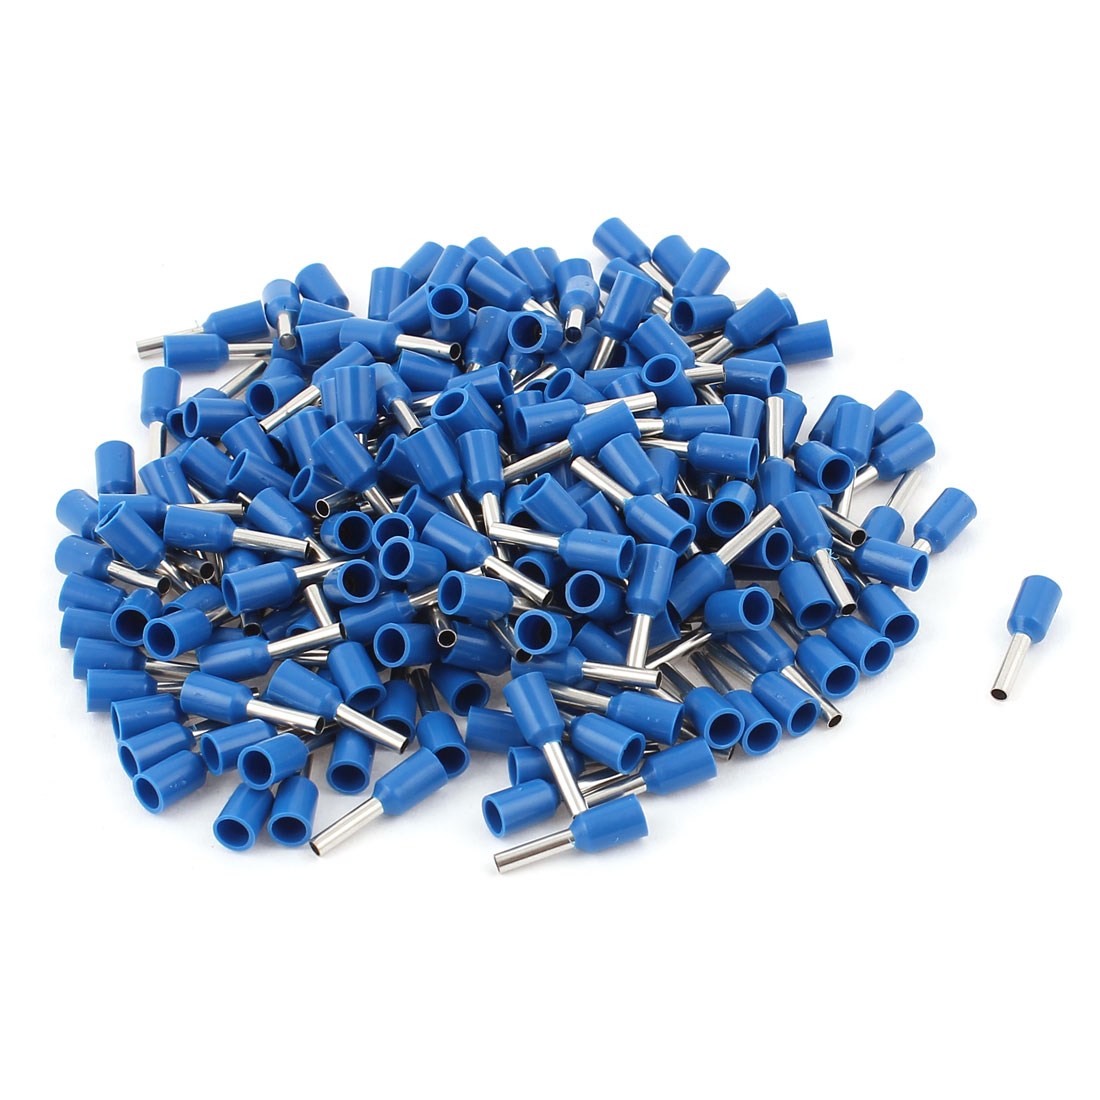 240 Pcs AGW16 Copper Wire Crimp Connector Insulated Ferrules Pin Cord End Terminals